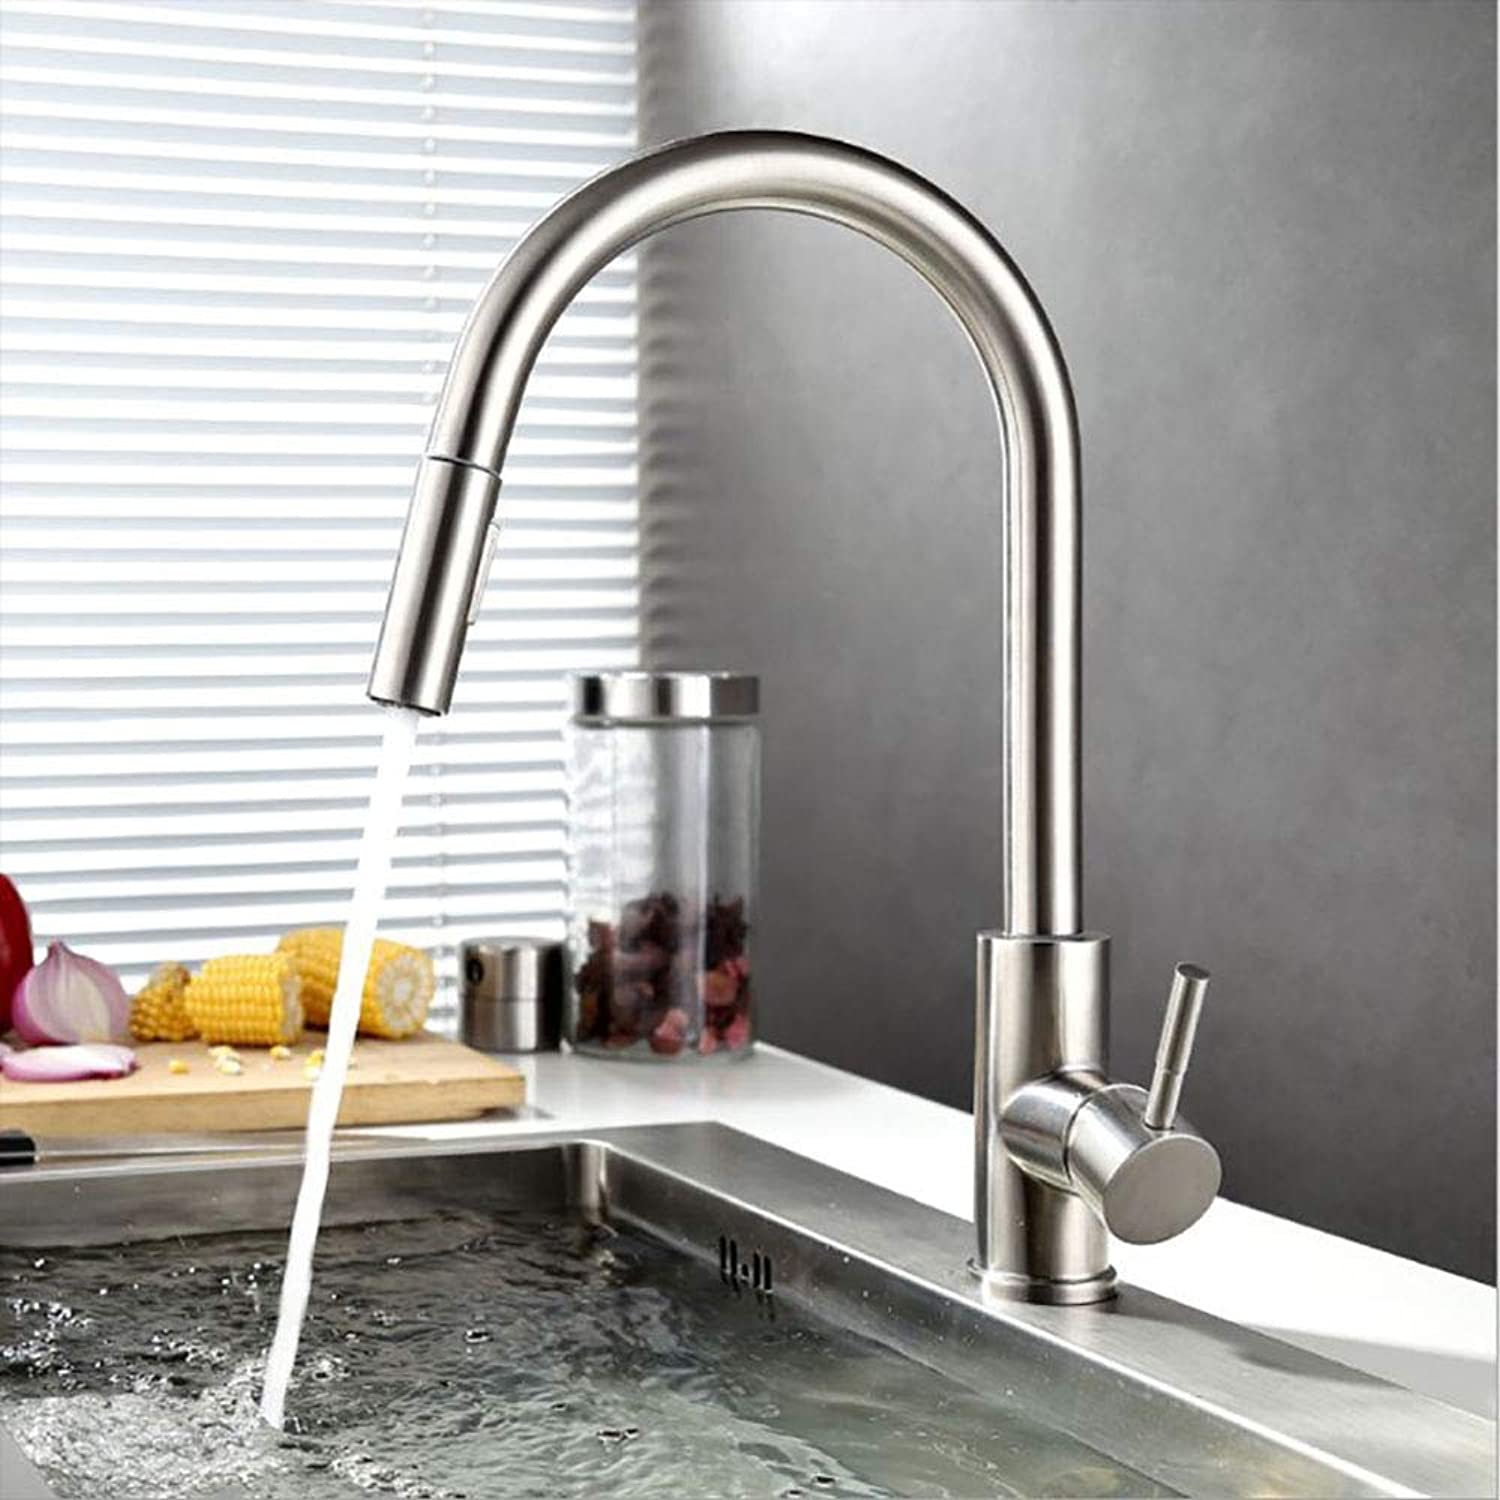 HUIJIN1 Touch Kitchen Faucets,304 stainless steel intelligent sensor touch water sink redatable 360 ° environmental predection water pumping hot and cold water faucet for kitchen, silver